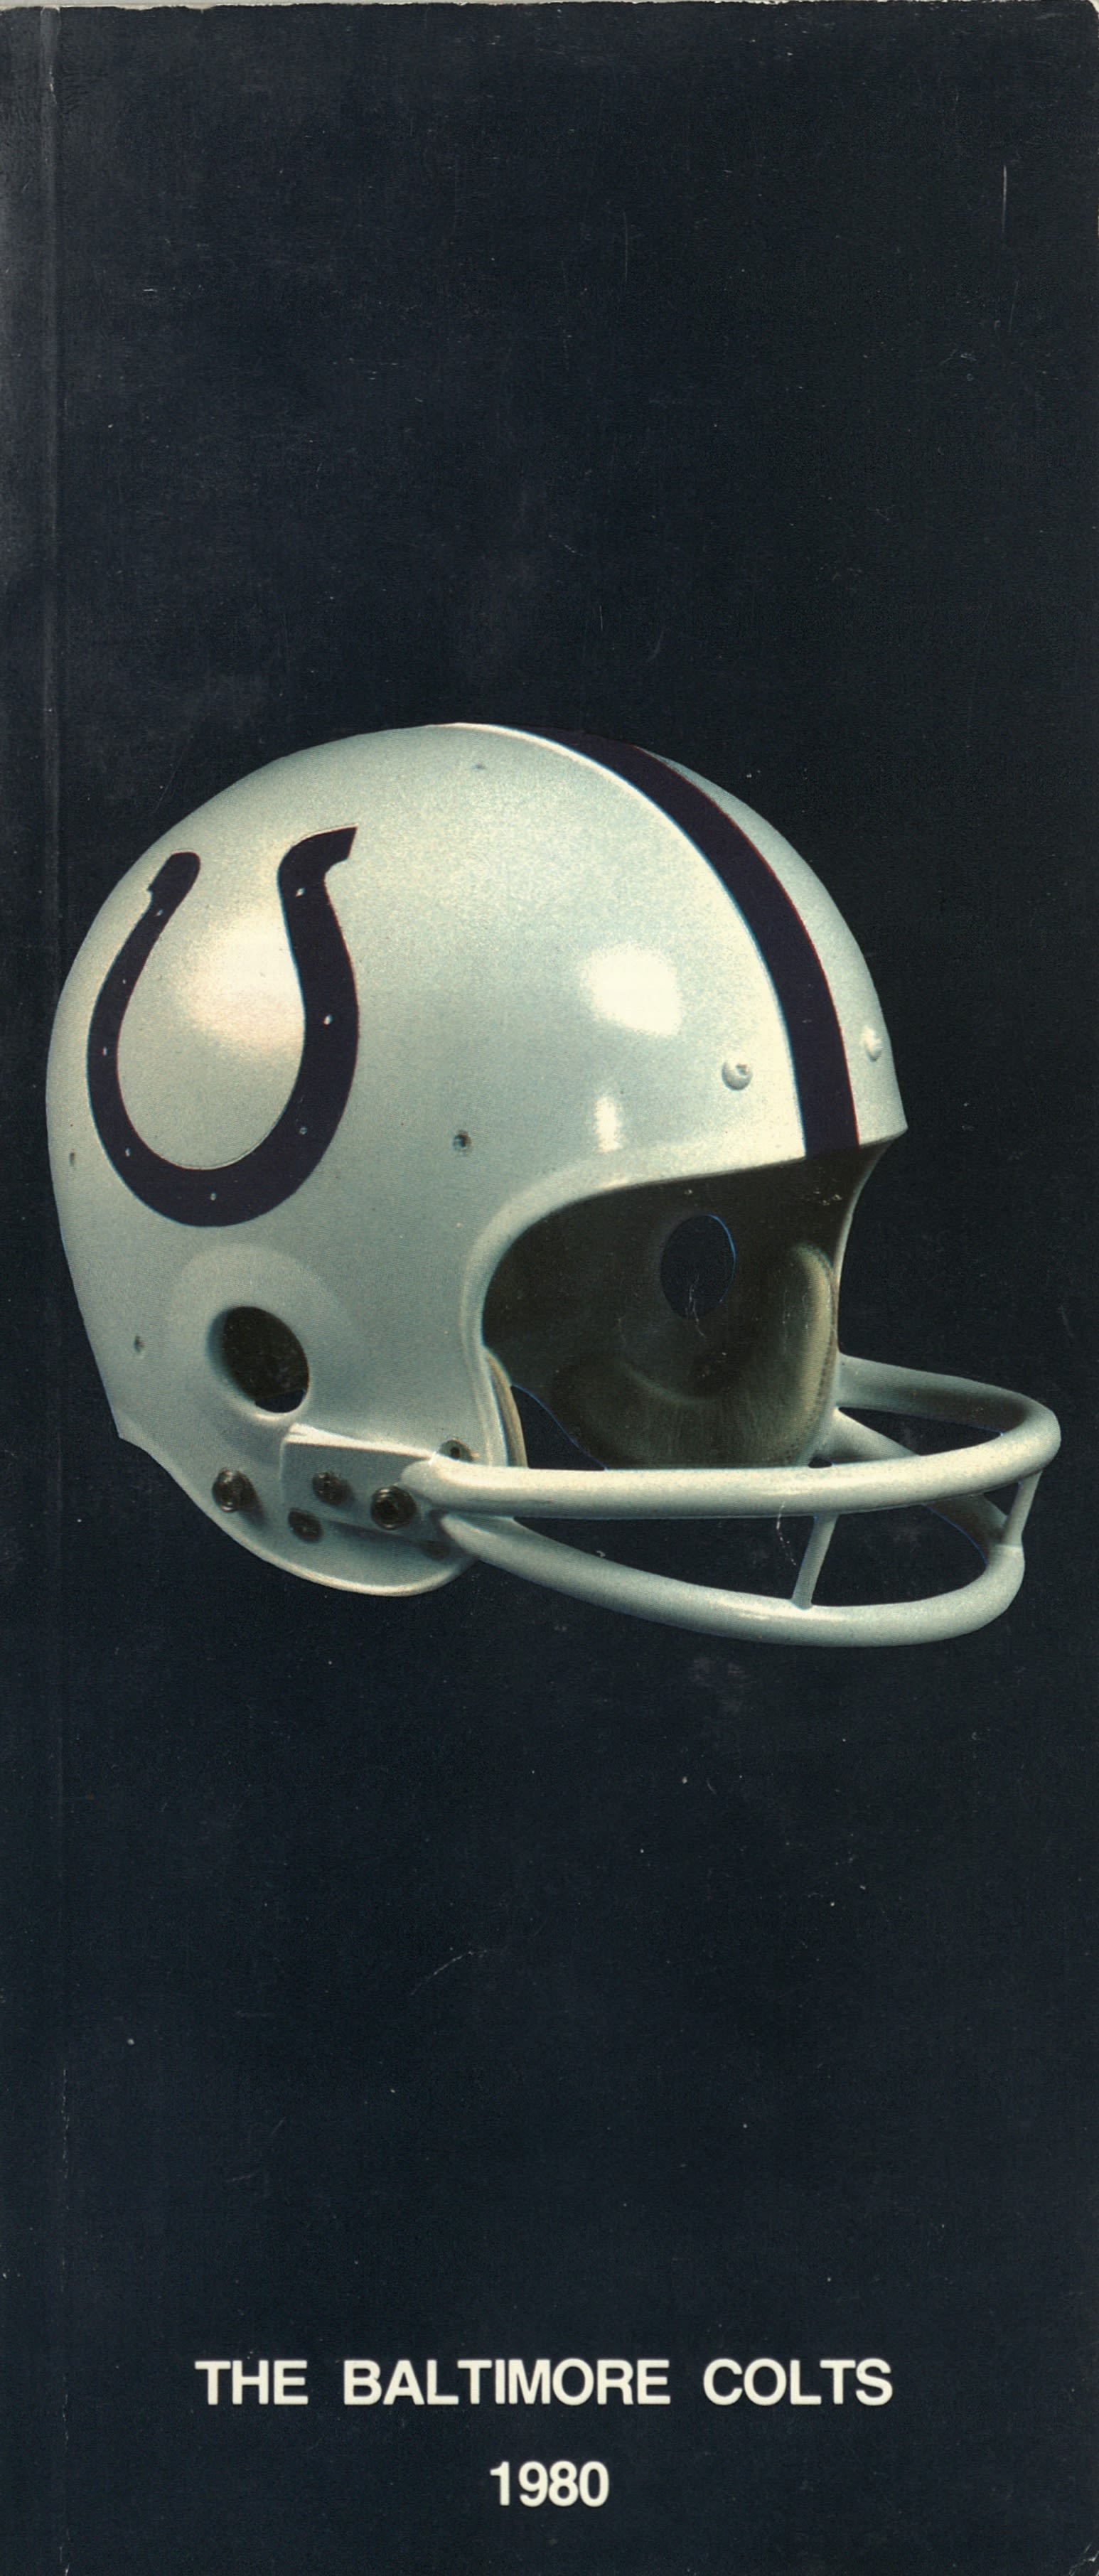 COLTS_1980_Cover